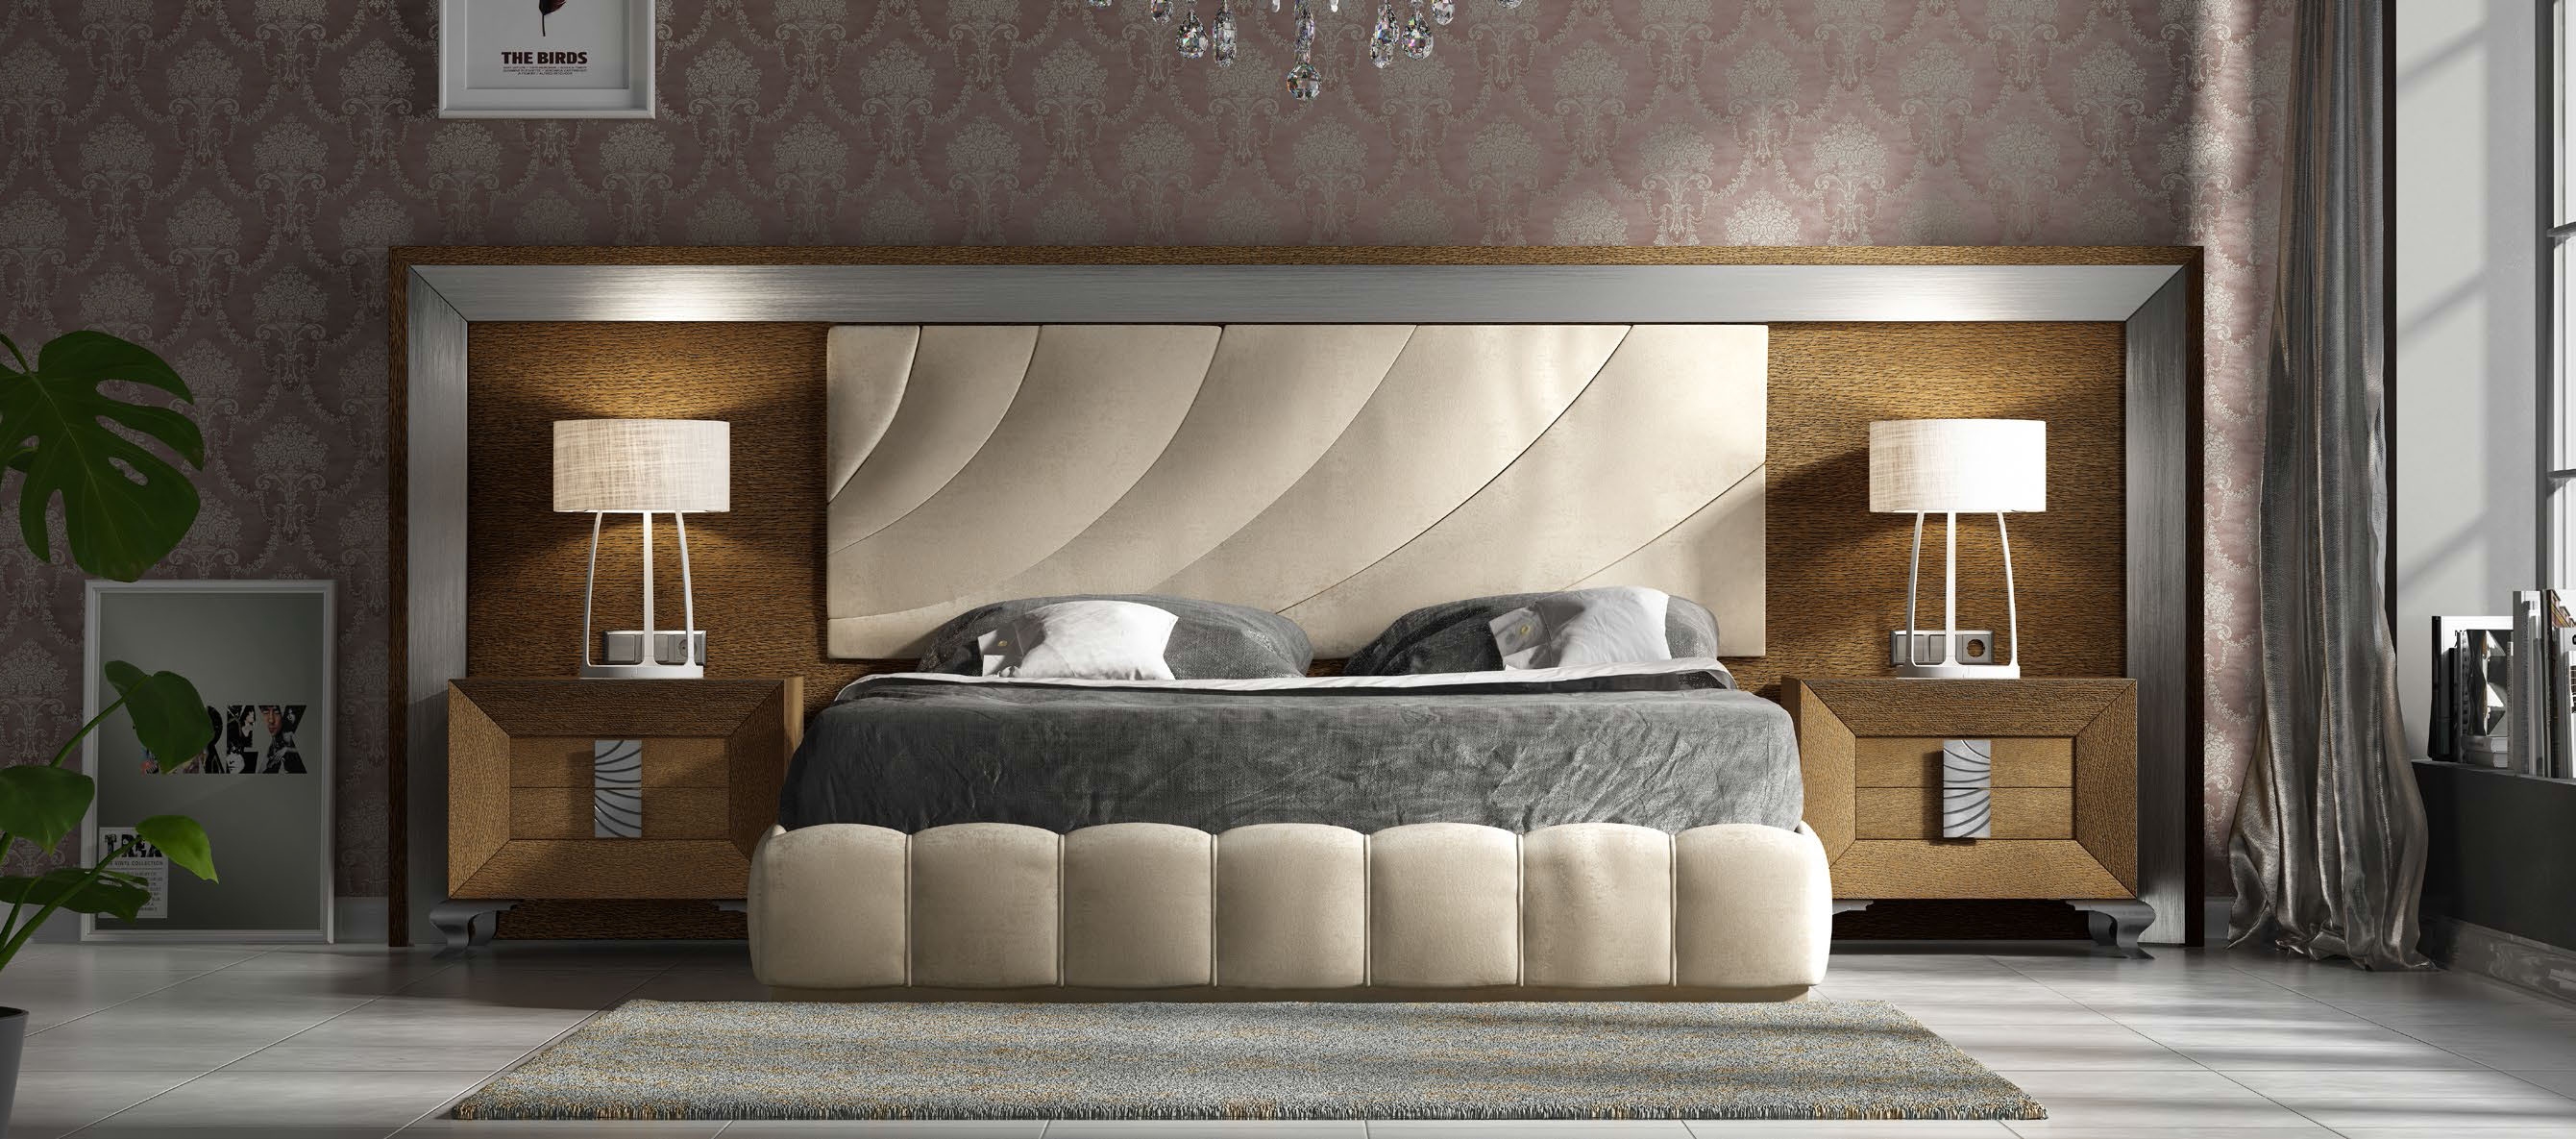 Brands Franco Furniture Bedrooms vol2, Spain DOR 110